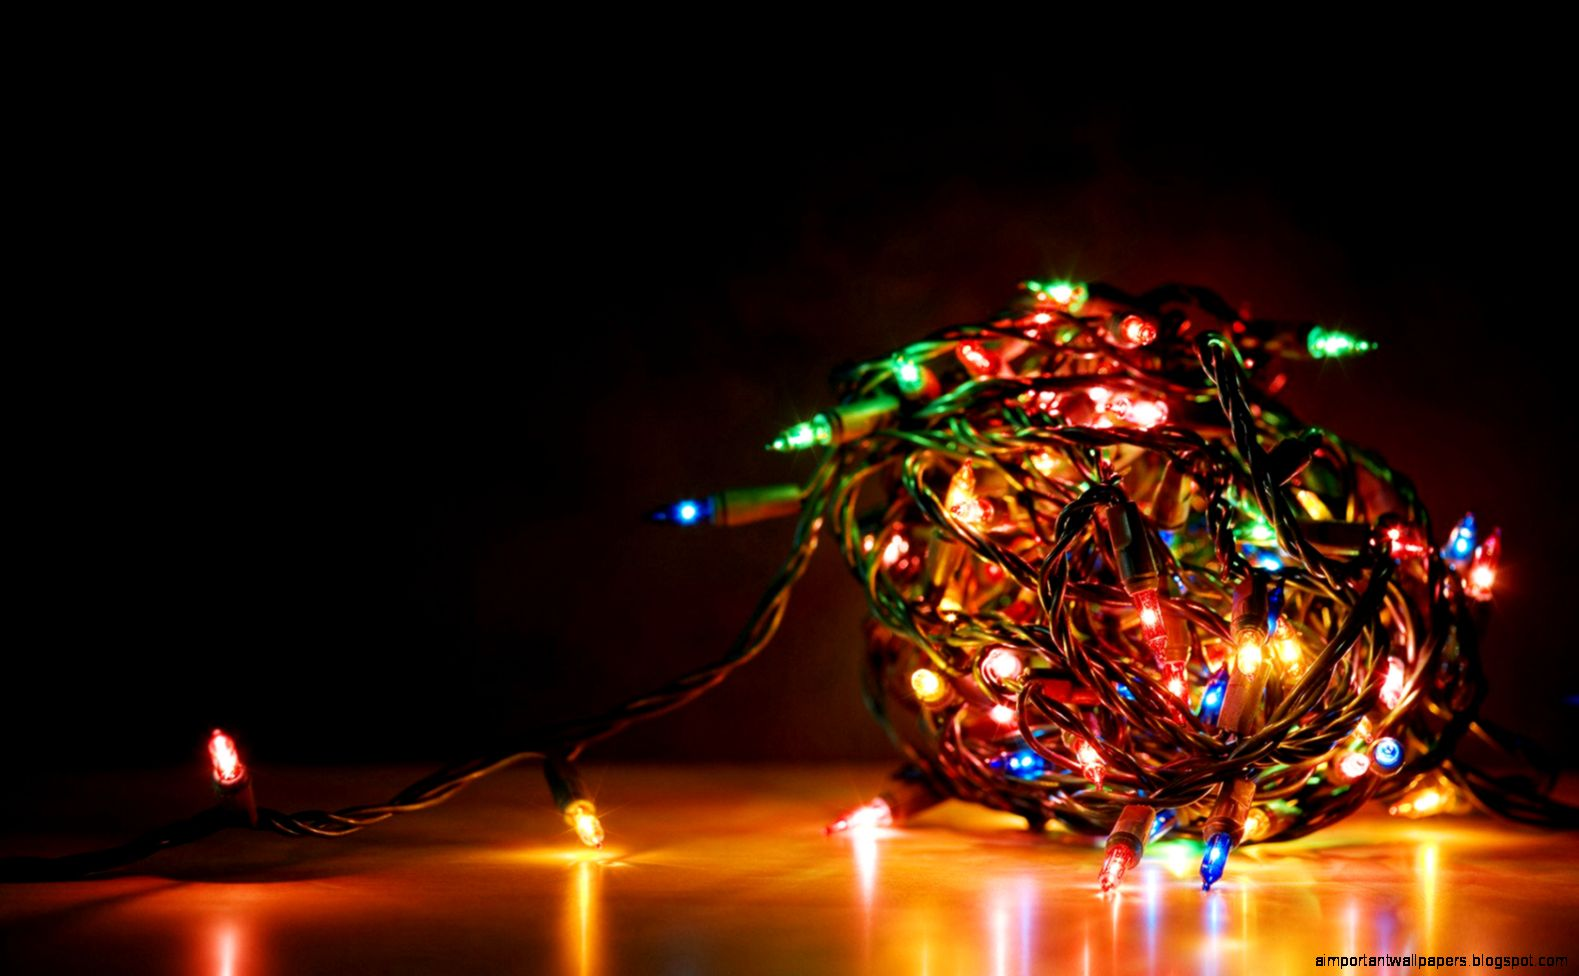 View Original Size Cool Christmas Wallpaper Wallpapers9